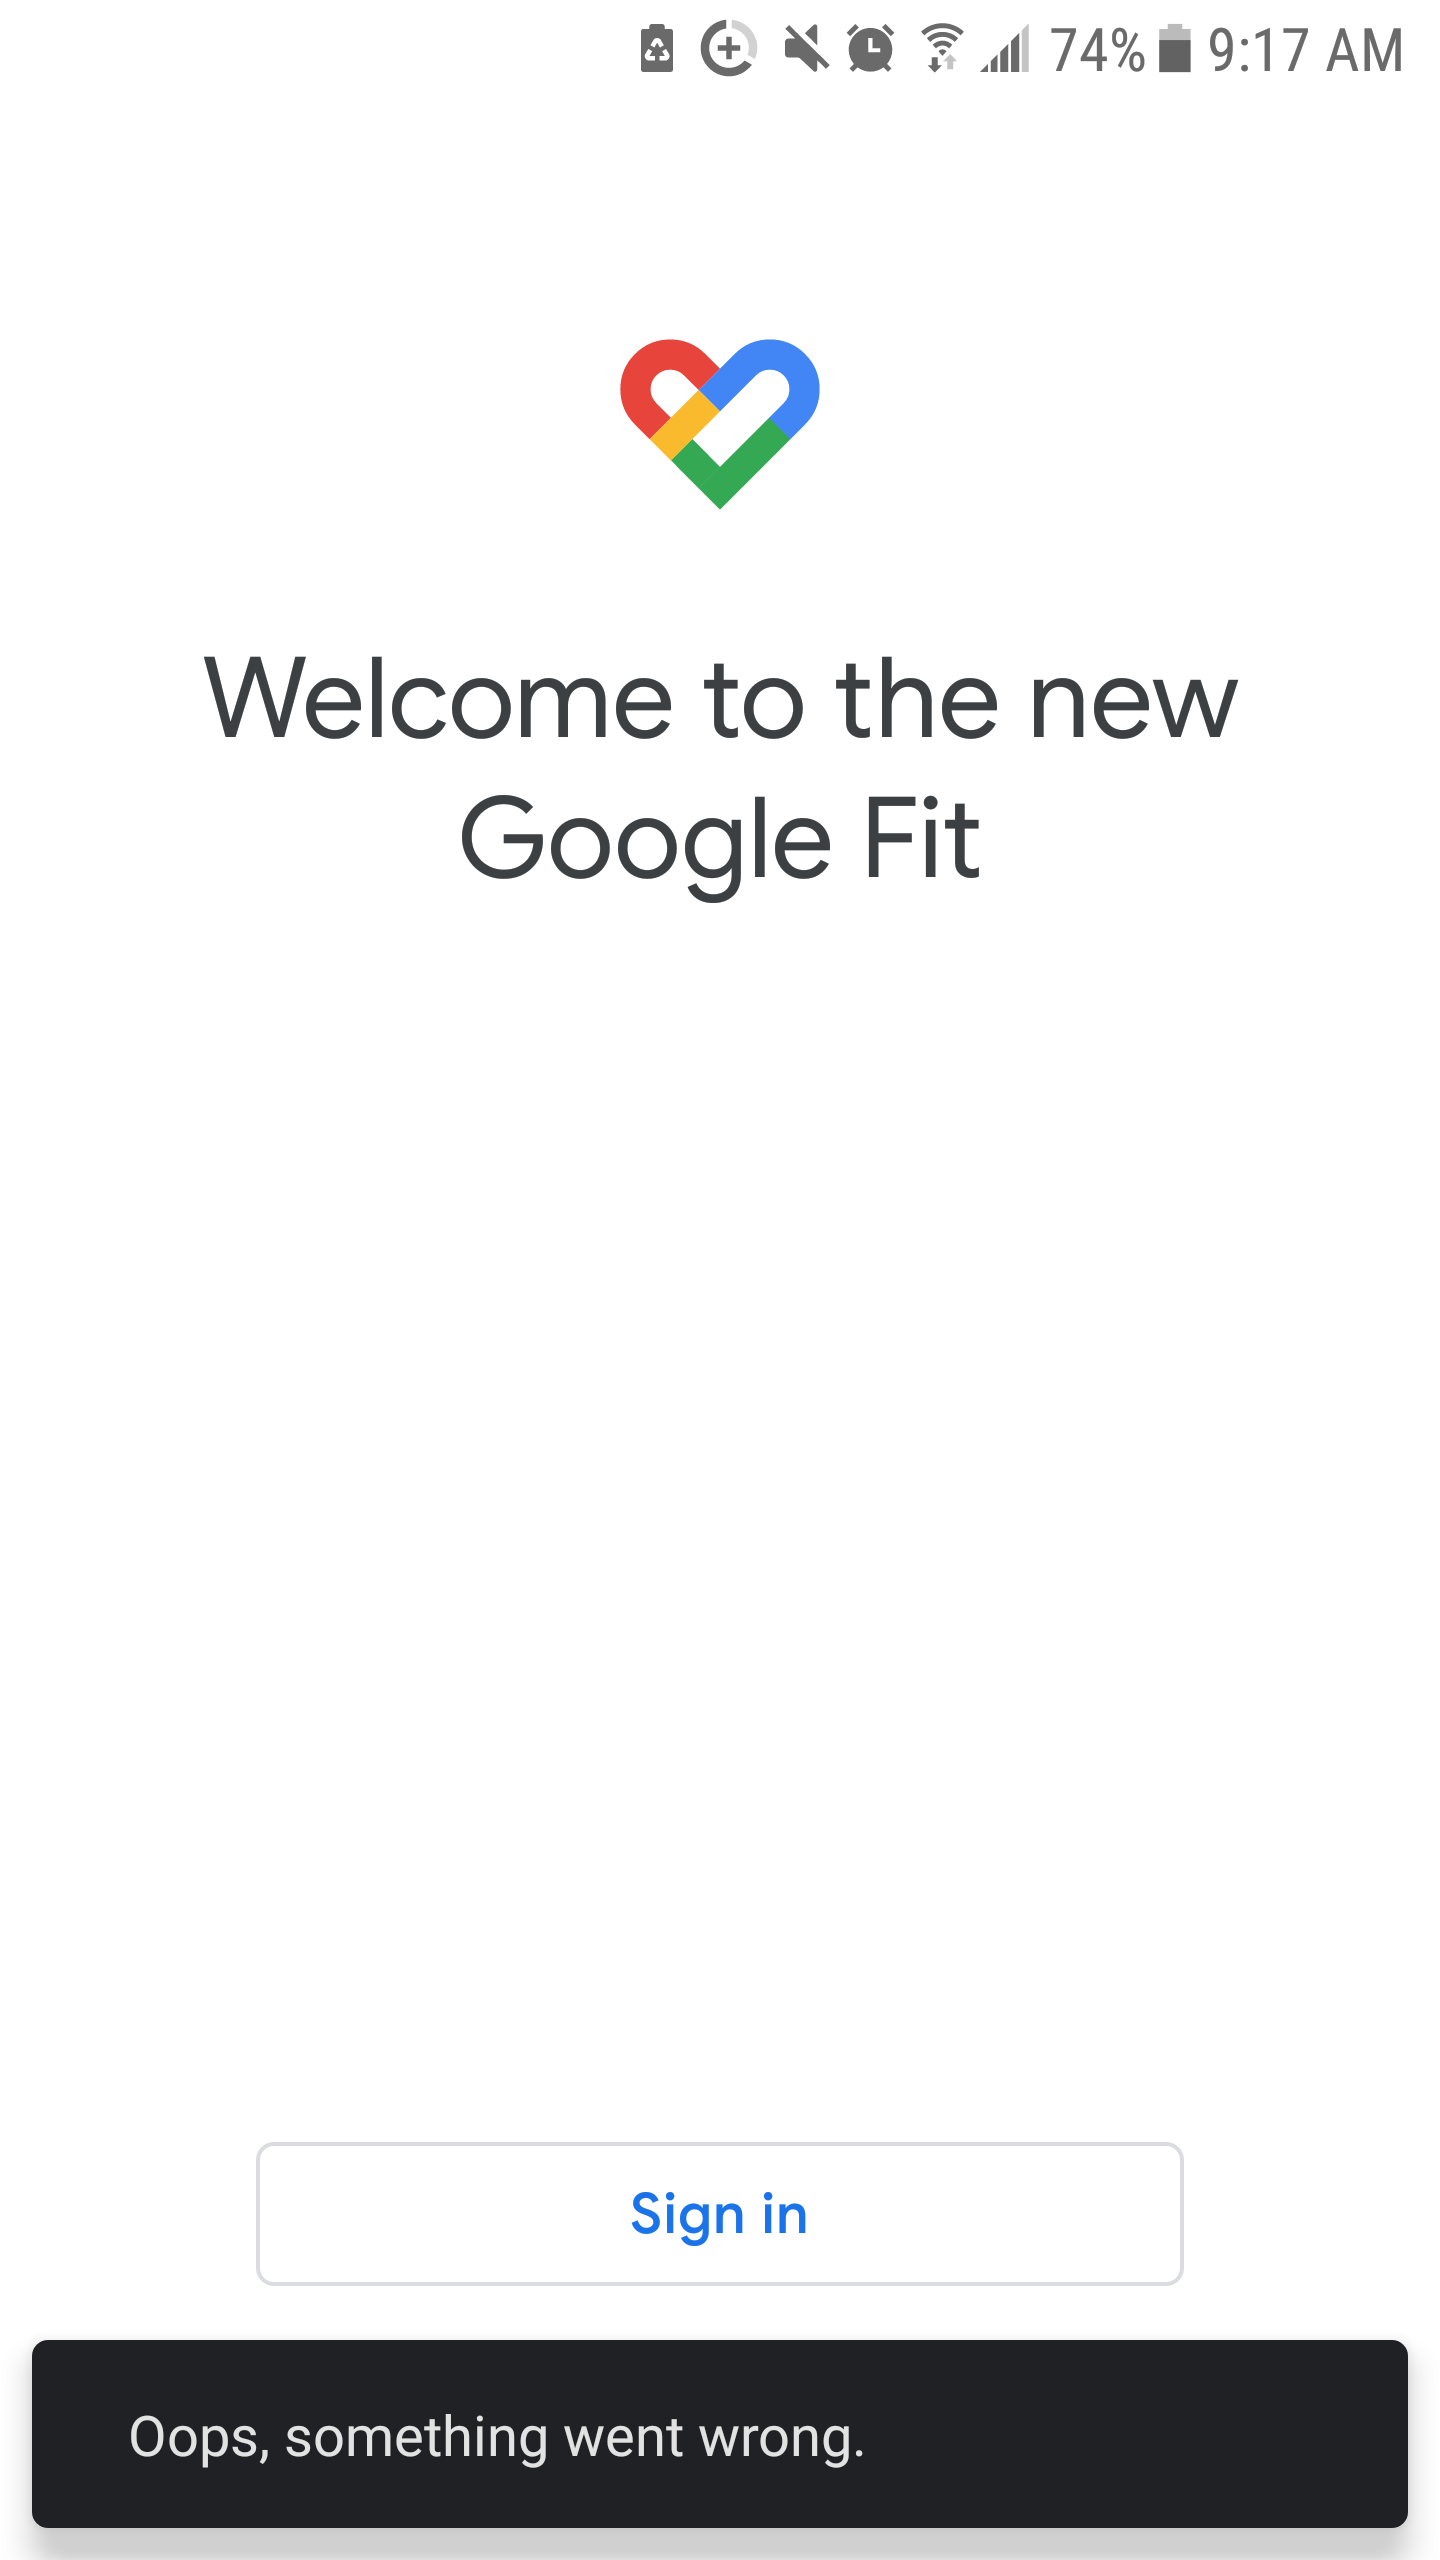 Unable to Sign Into Google Fit/ Not Recognizing Account